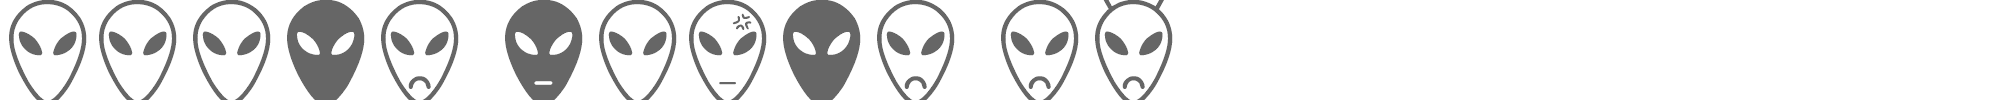 Sample characters Alien Faces ST Font